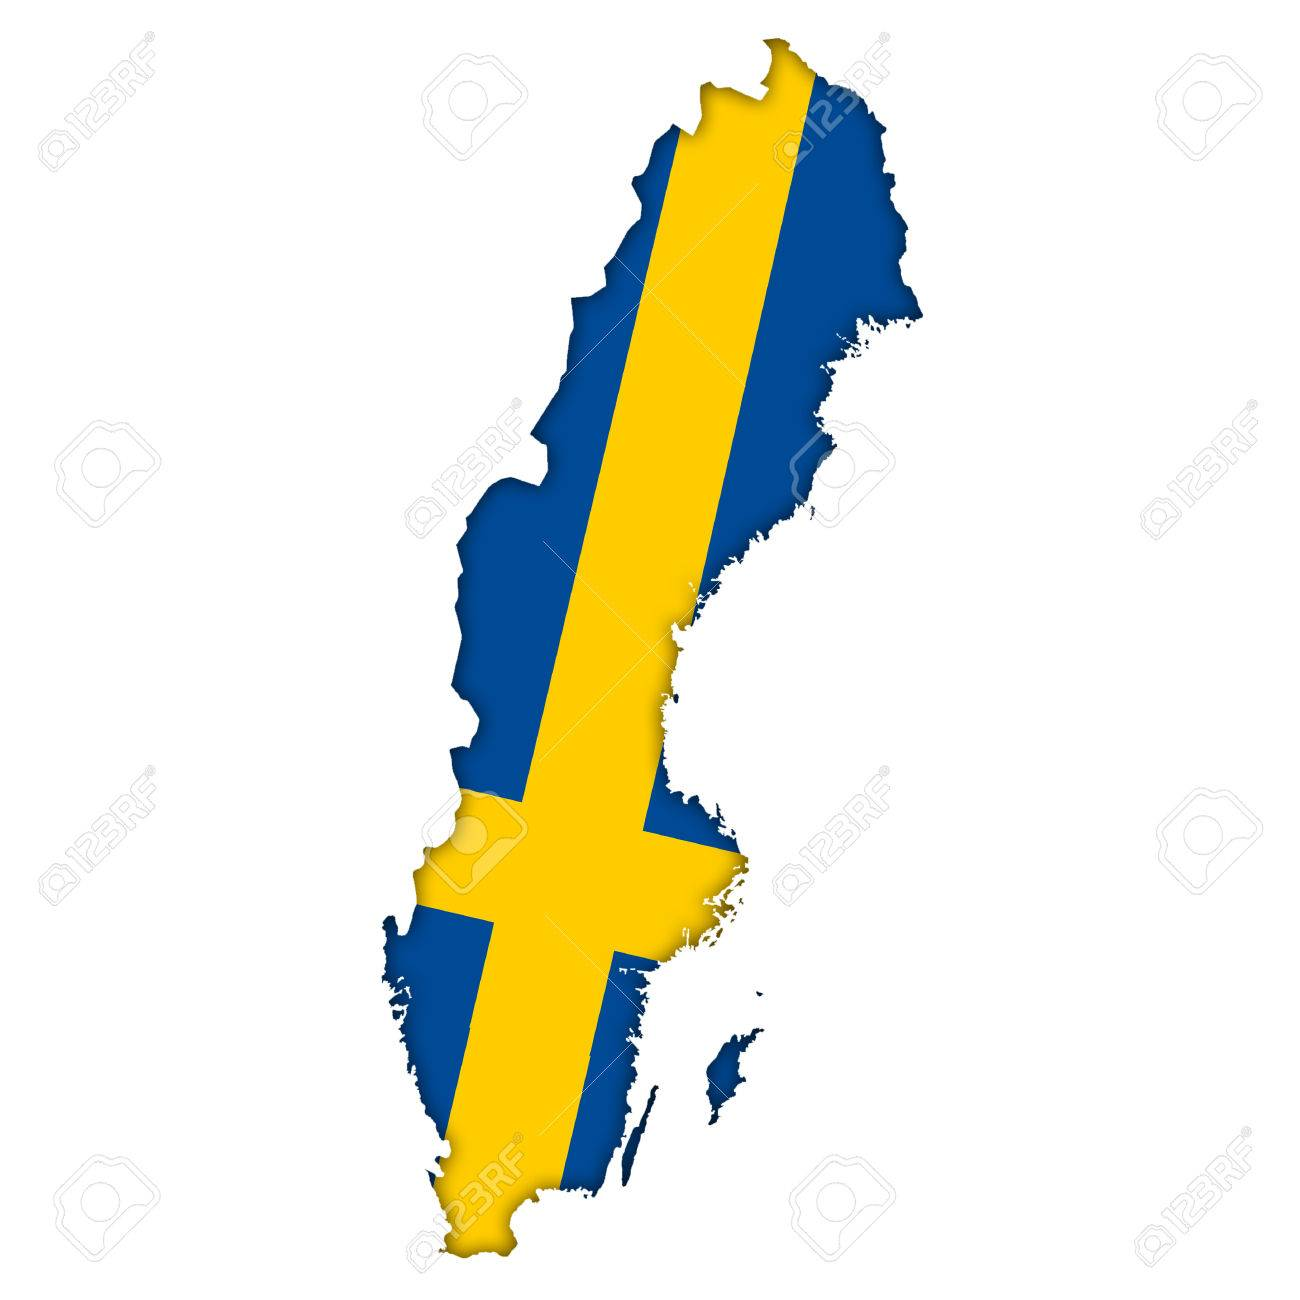 Sweden Flag Map Icon Stock Photo Picture And Royalty Free Image - Sweden map flag